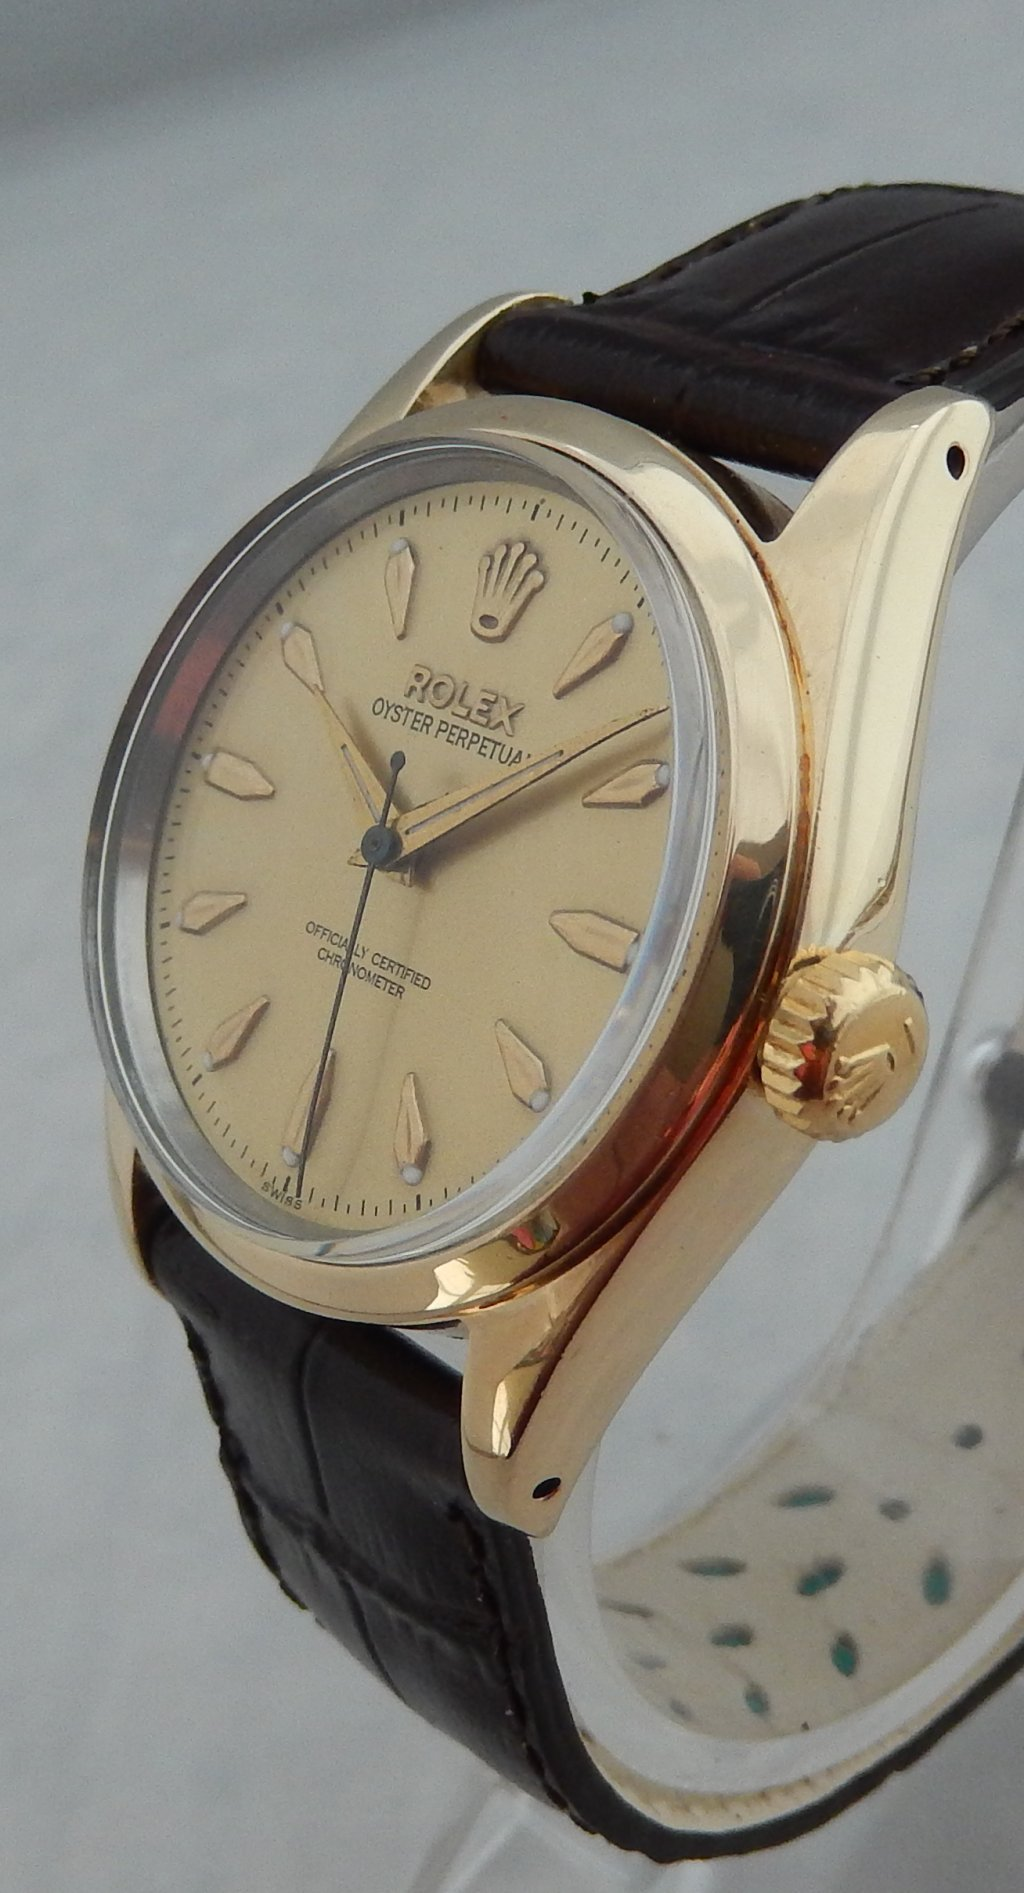 Rolex Oyster Perpetual Gold Capped 34mm Mens Watch Leather Strap ...